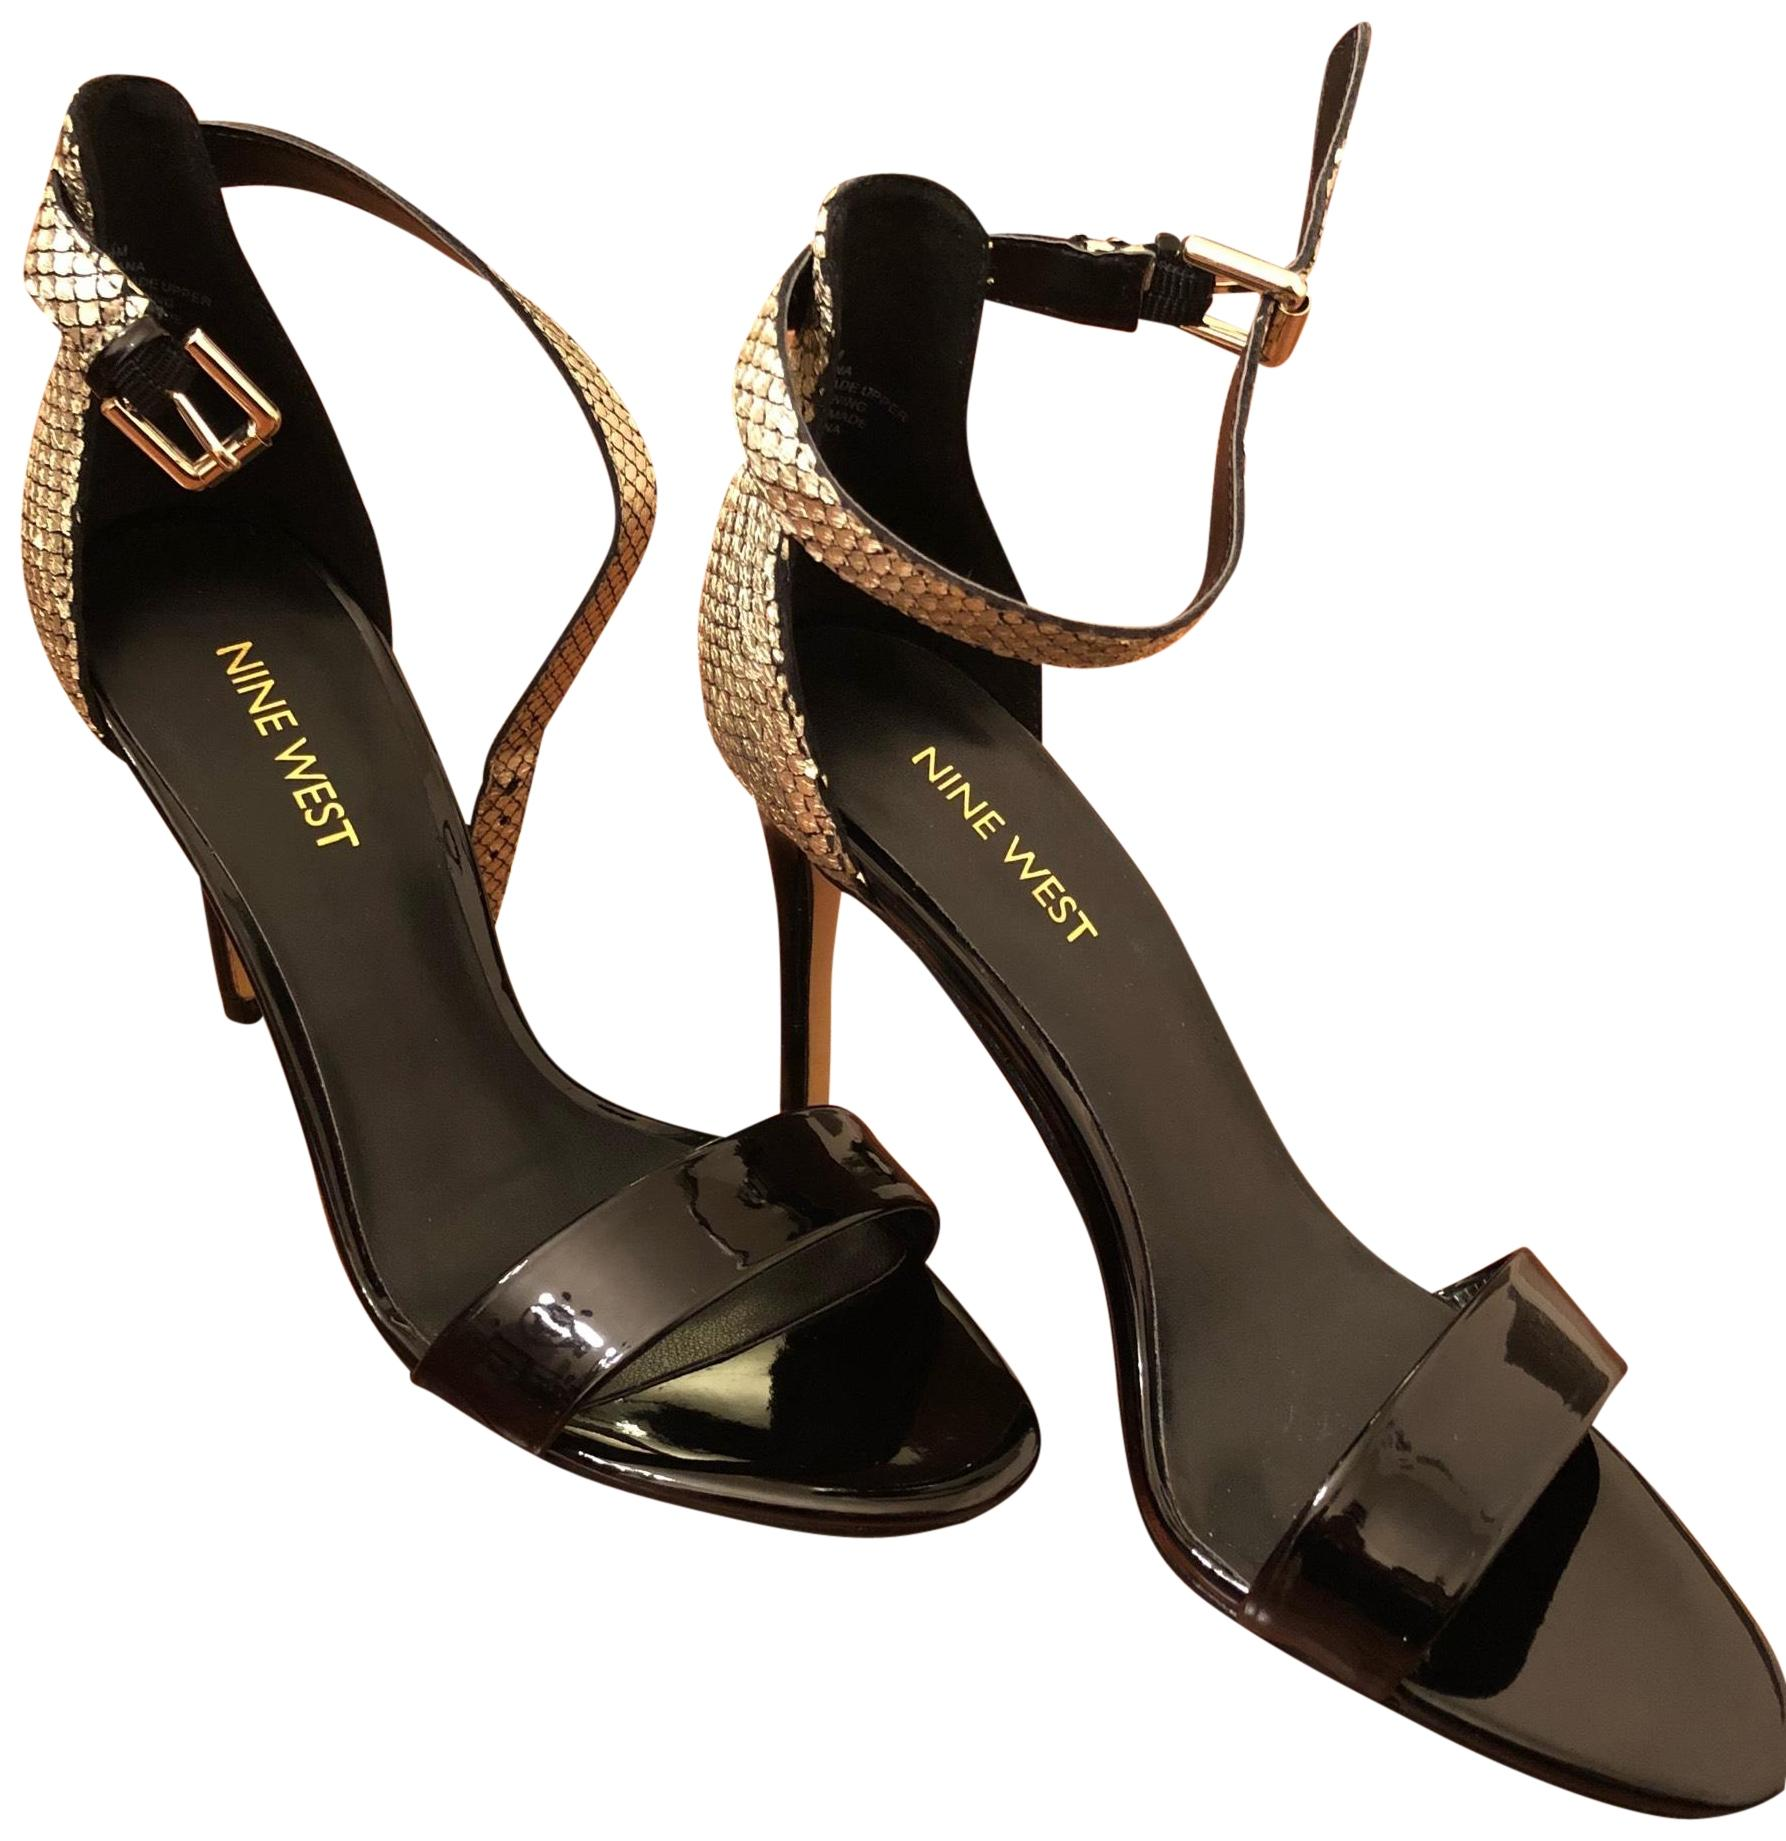 Nine West Black with Gold 25017278-2jq Nwmana Formal Shoes Size US 6.5 Regular (M, B)